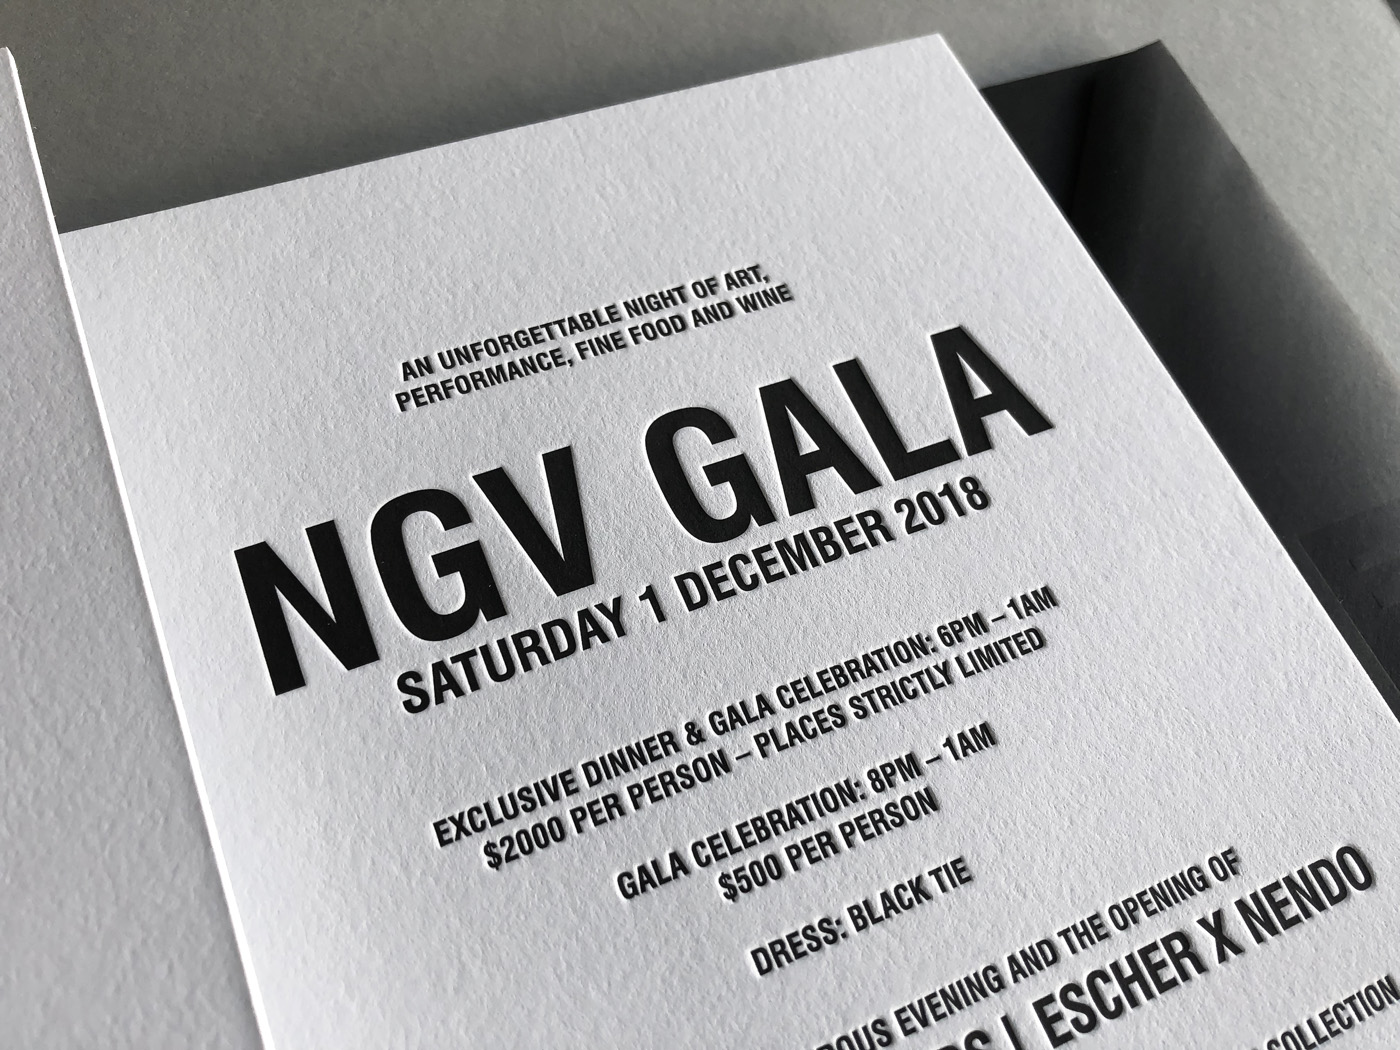 Letterpress printed invitations for NGV Gala on Savoy